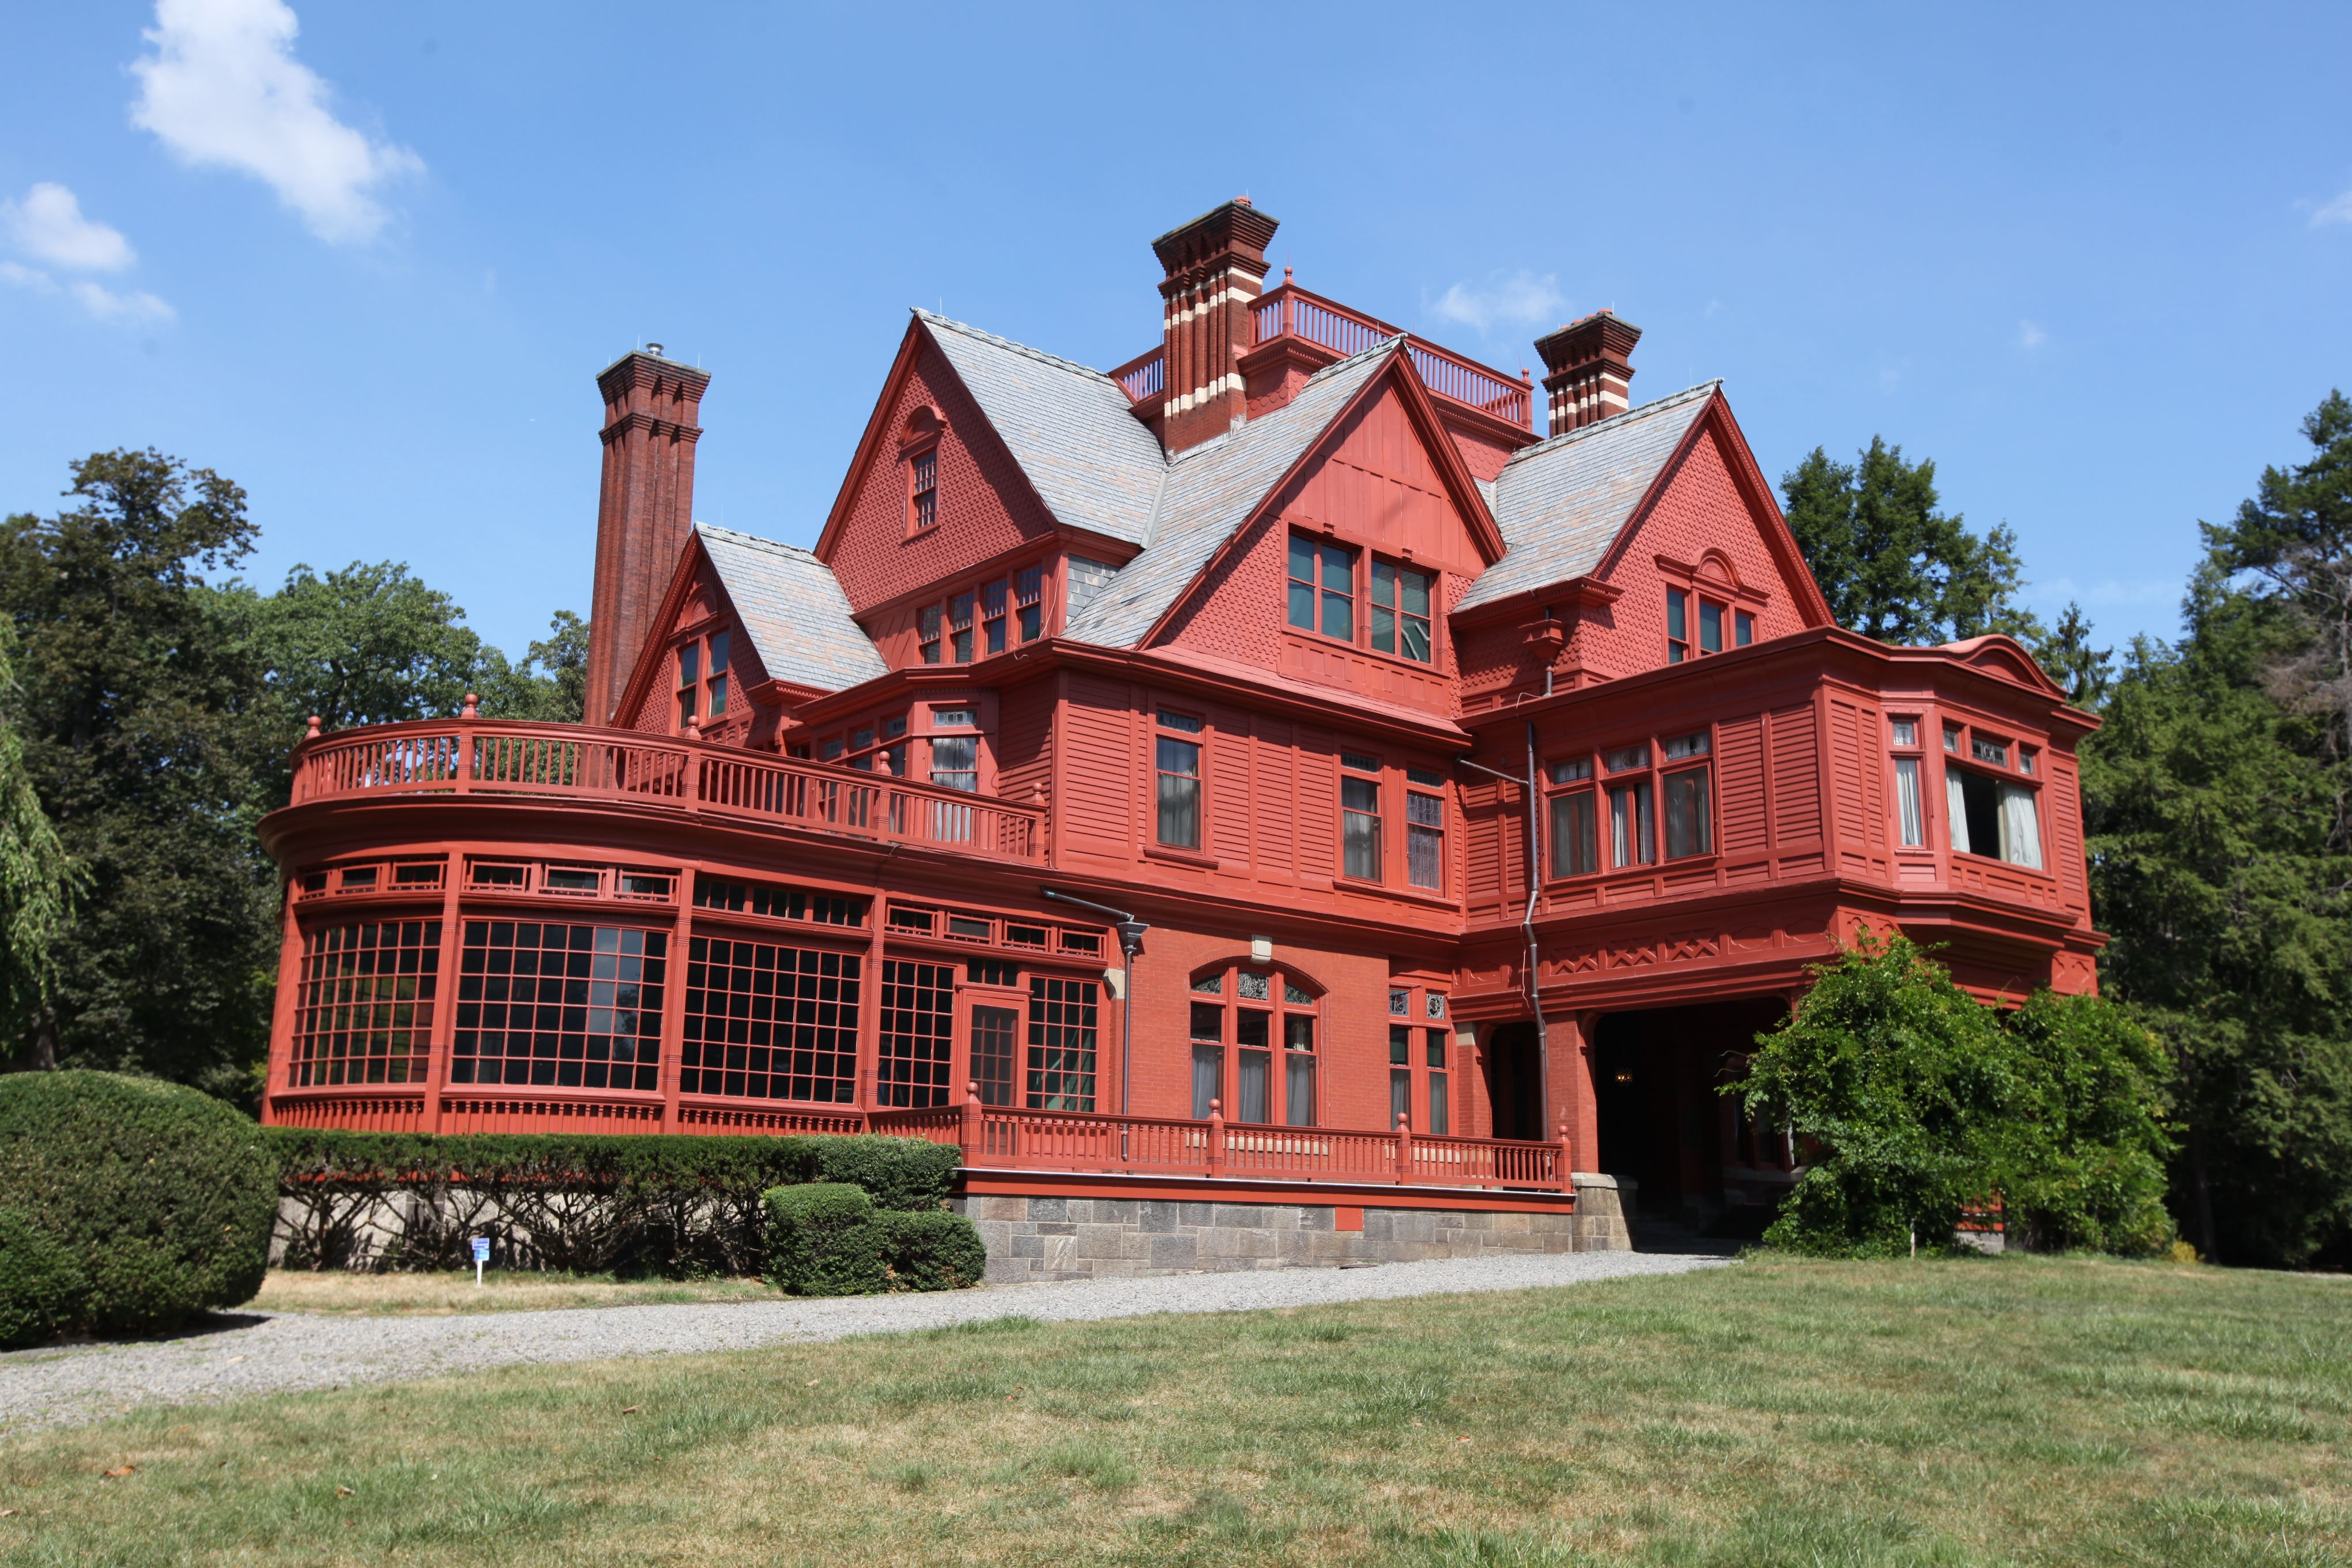 Glenmont, Llewellyn Park, Home Of Thomas A Edison In West